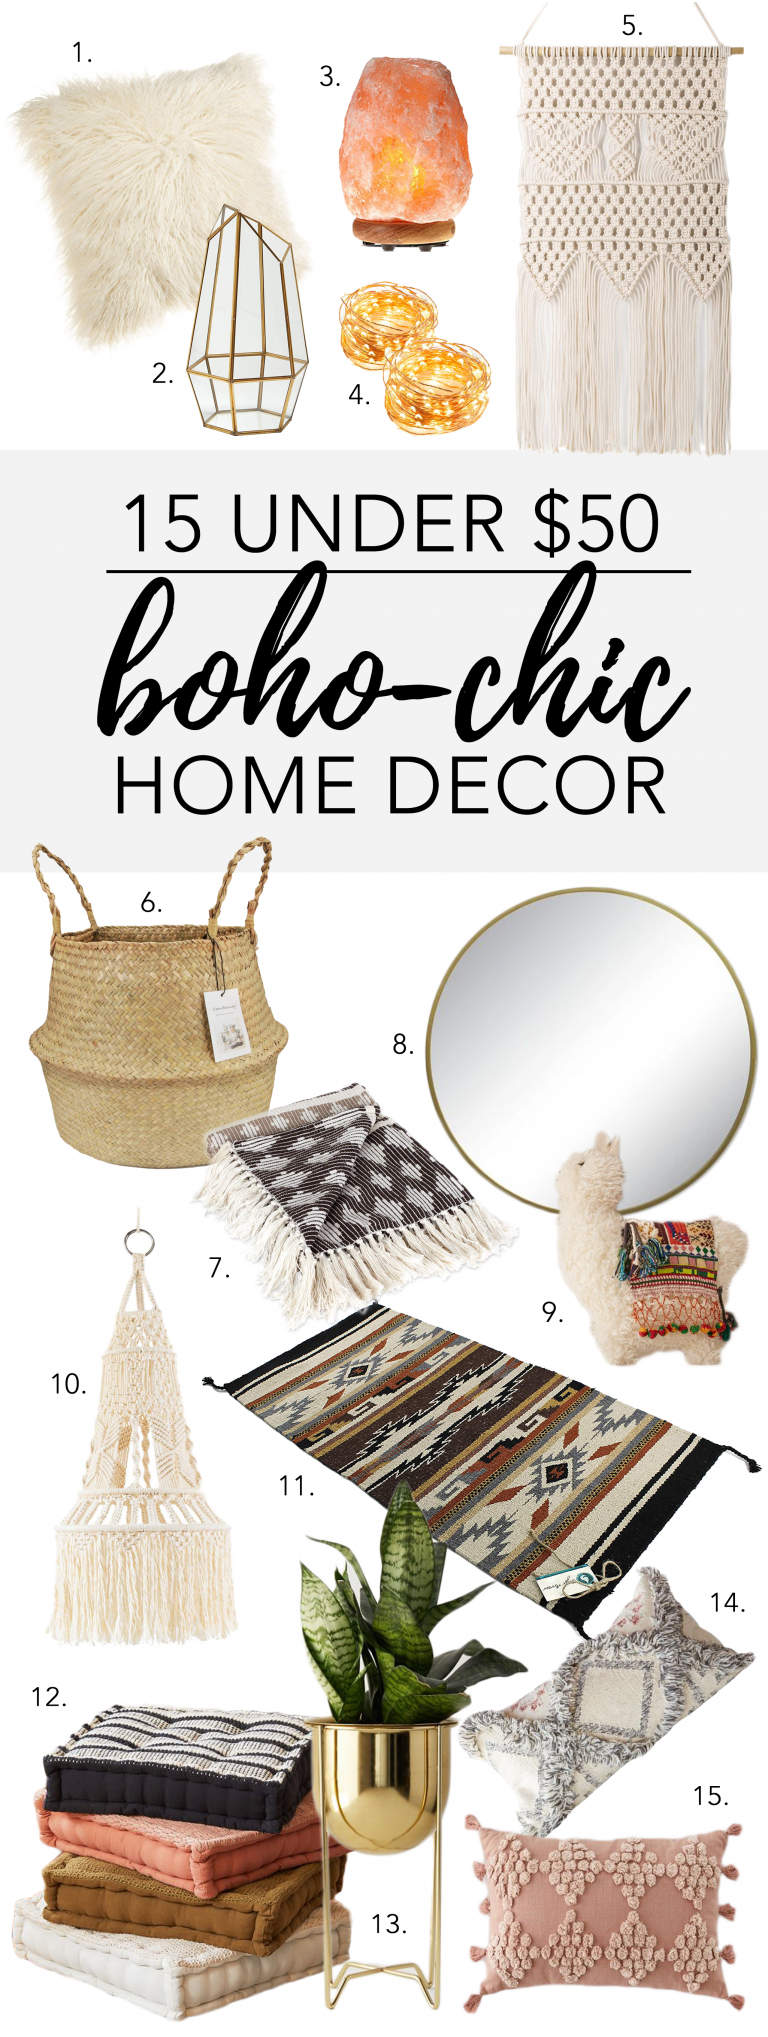 Glib Boho Living Room #Homes #WallFurnitureLivingRoom – diy home decor - Hybri... - BestBLog